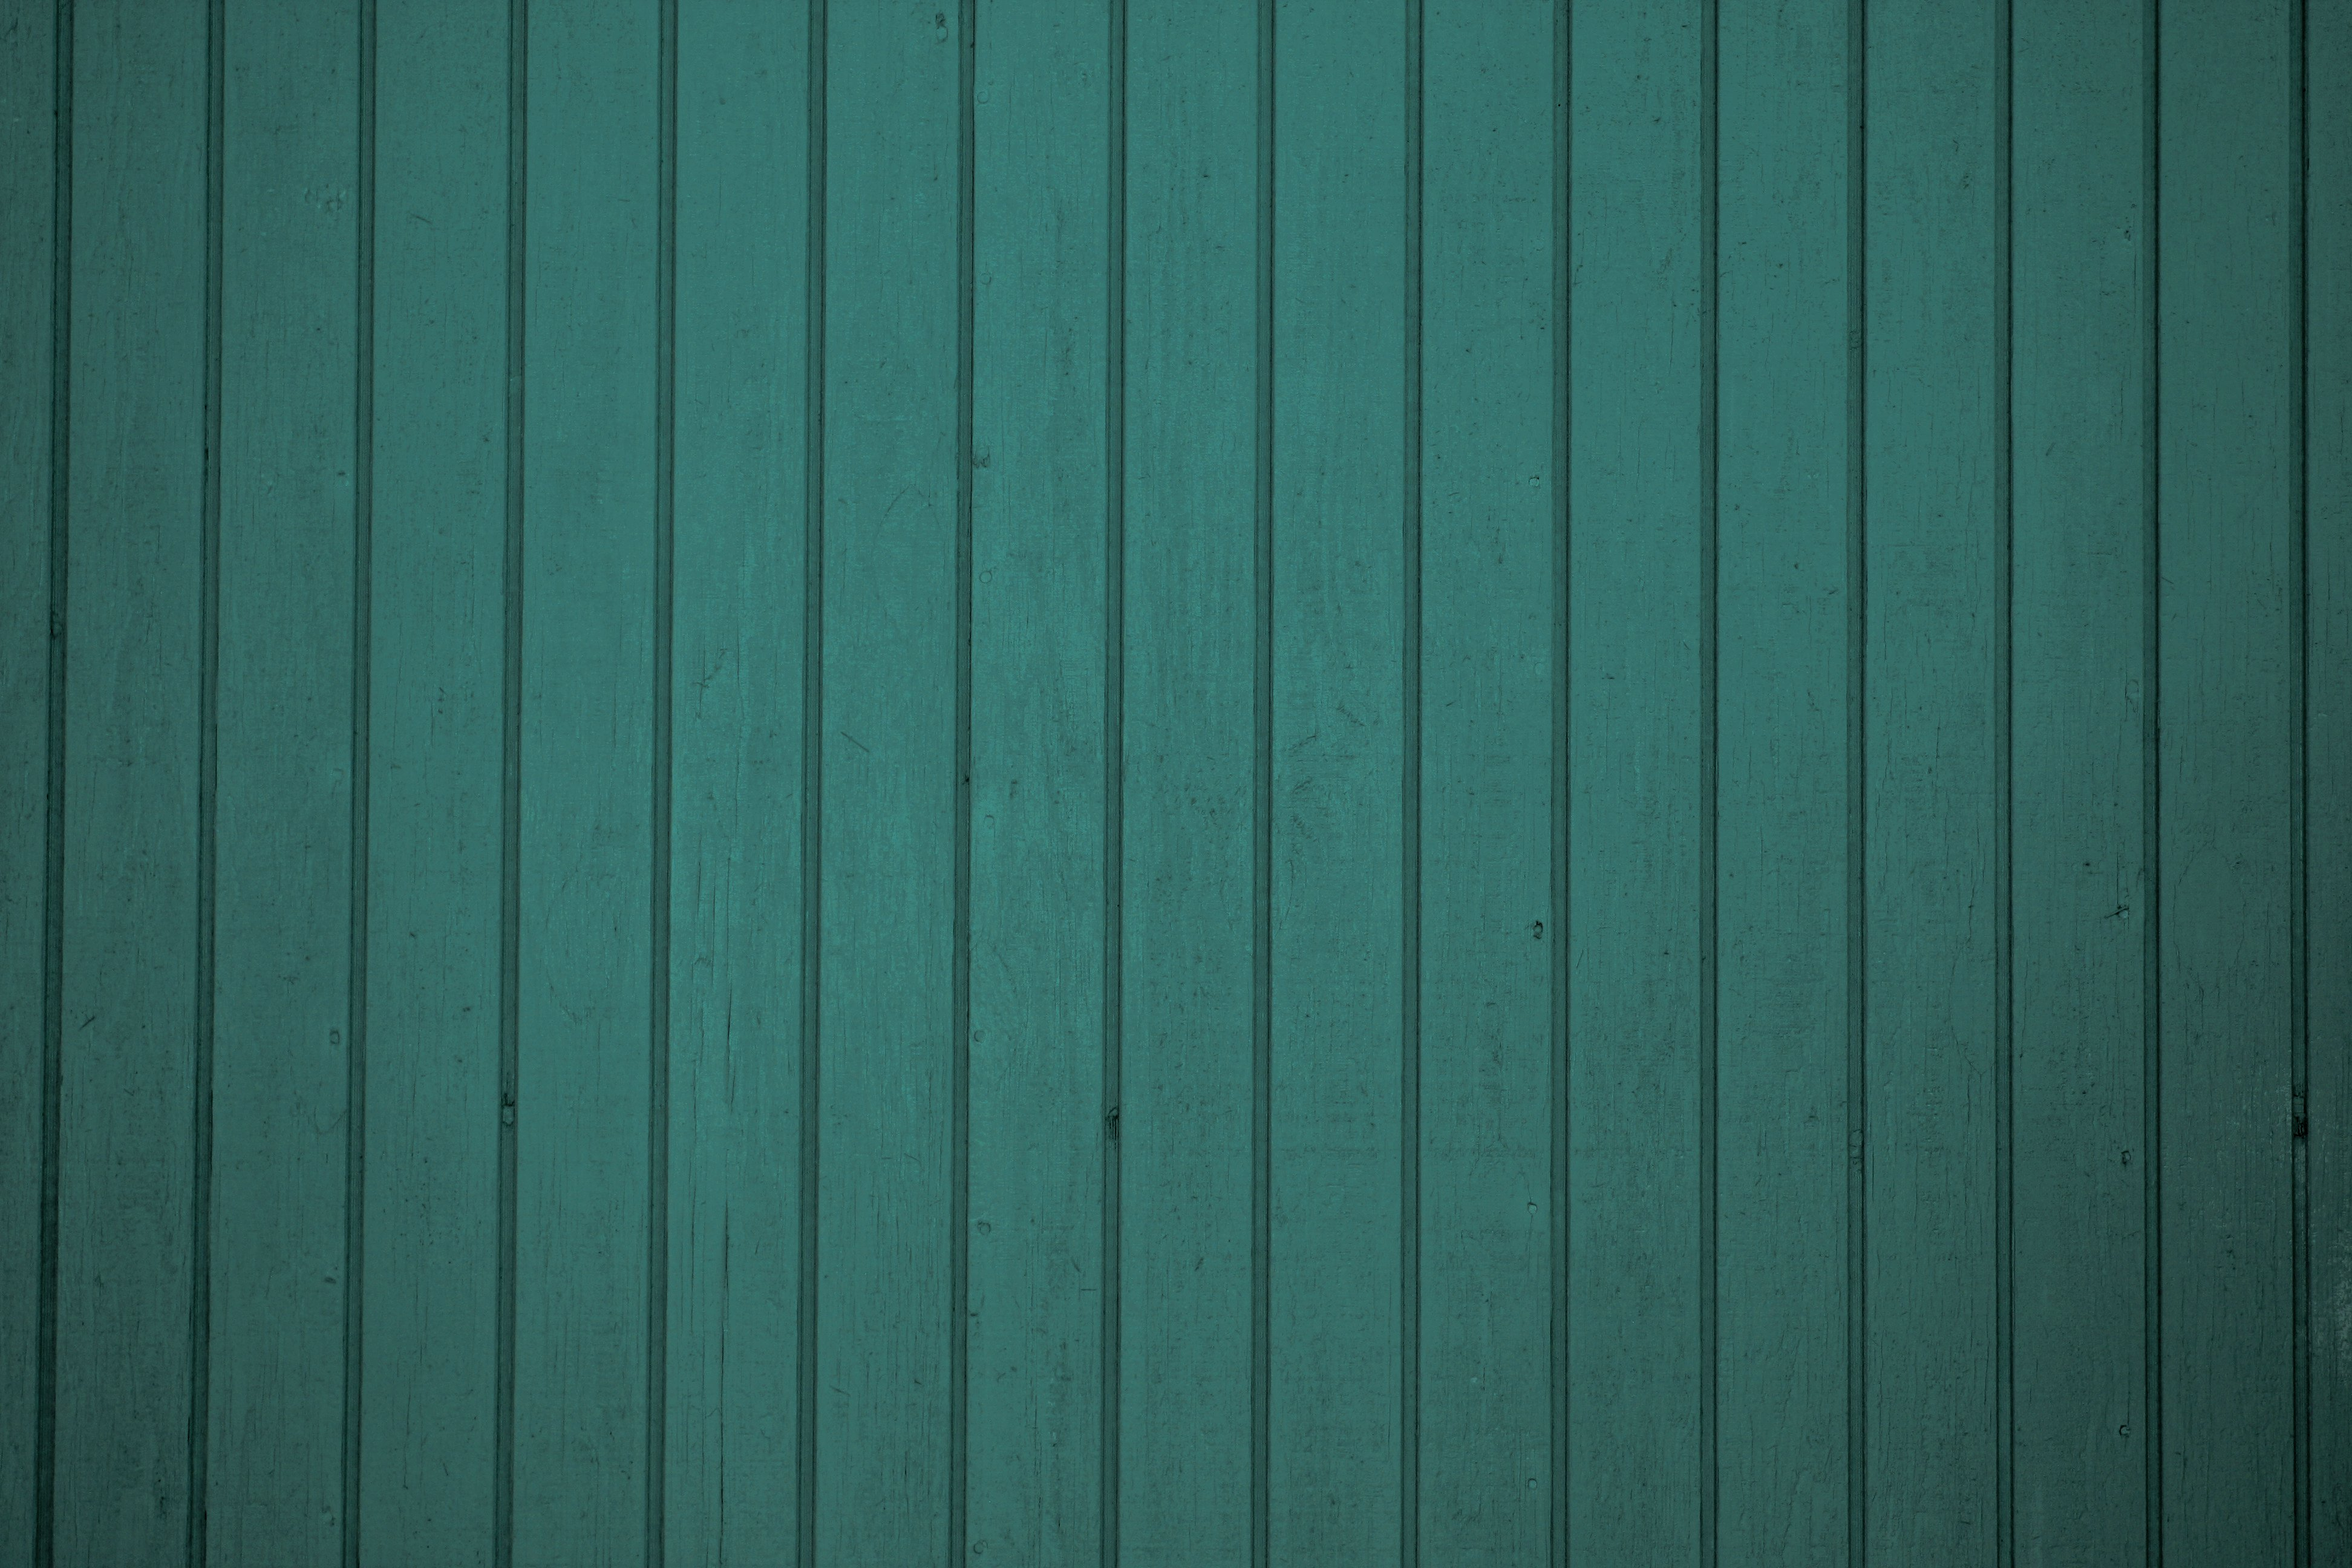 Green Vertical Siding Texture Photos Public Domain